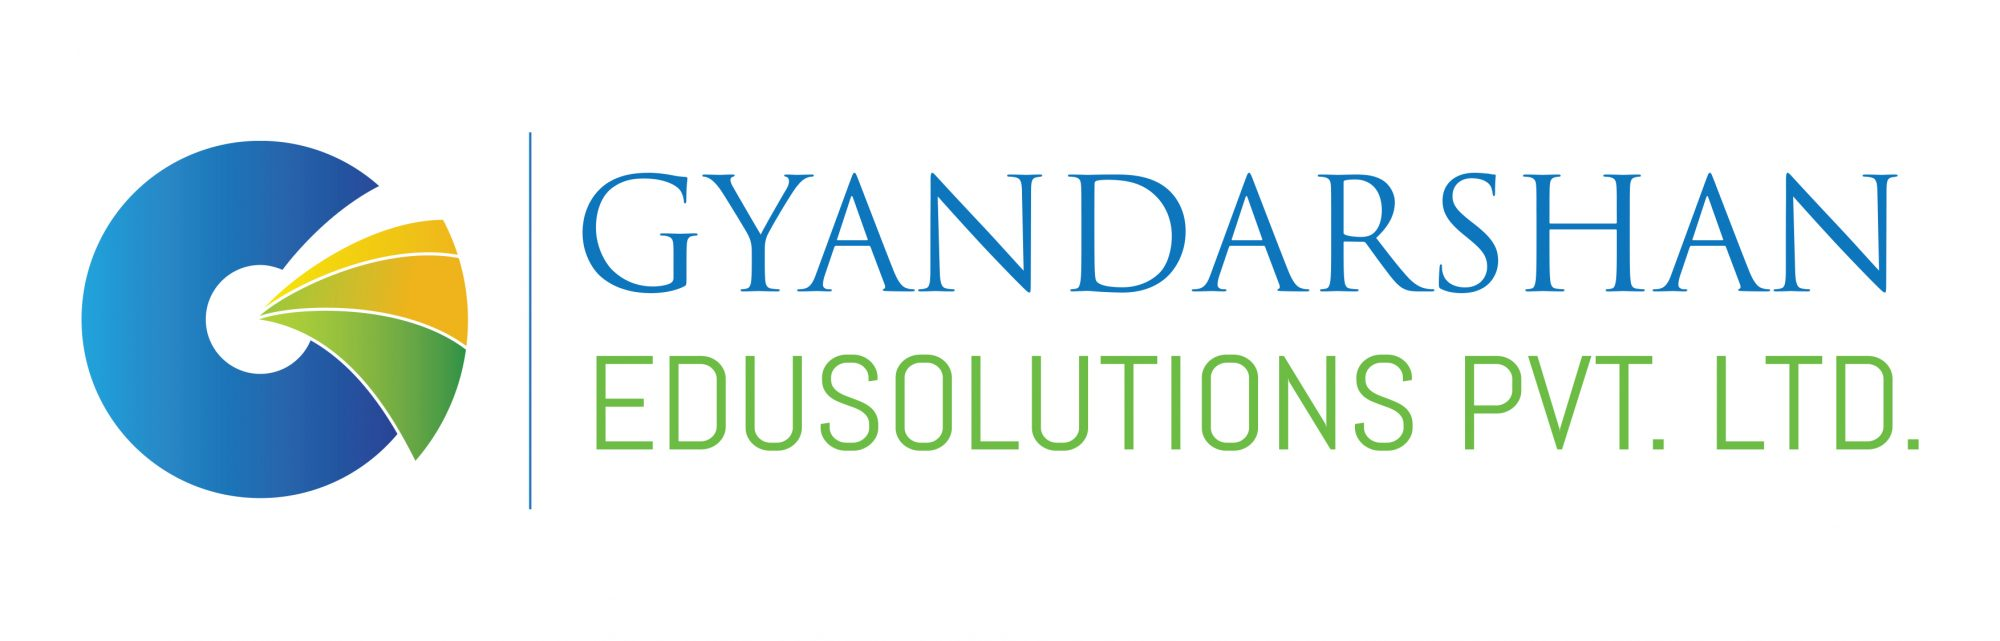 Gyandarshan Edusolutions Private Limited (OPC)